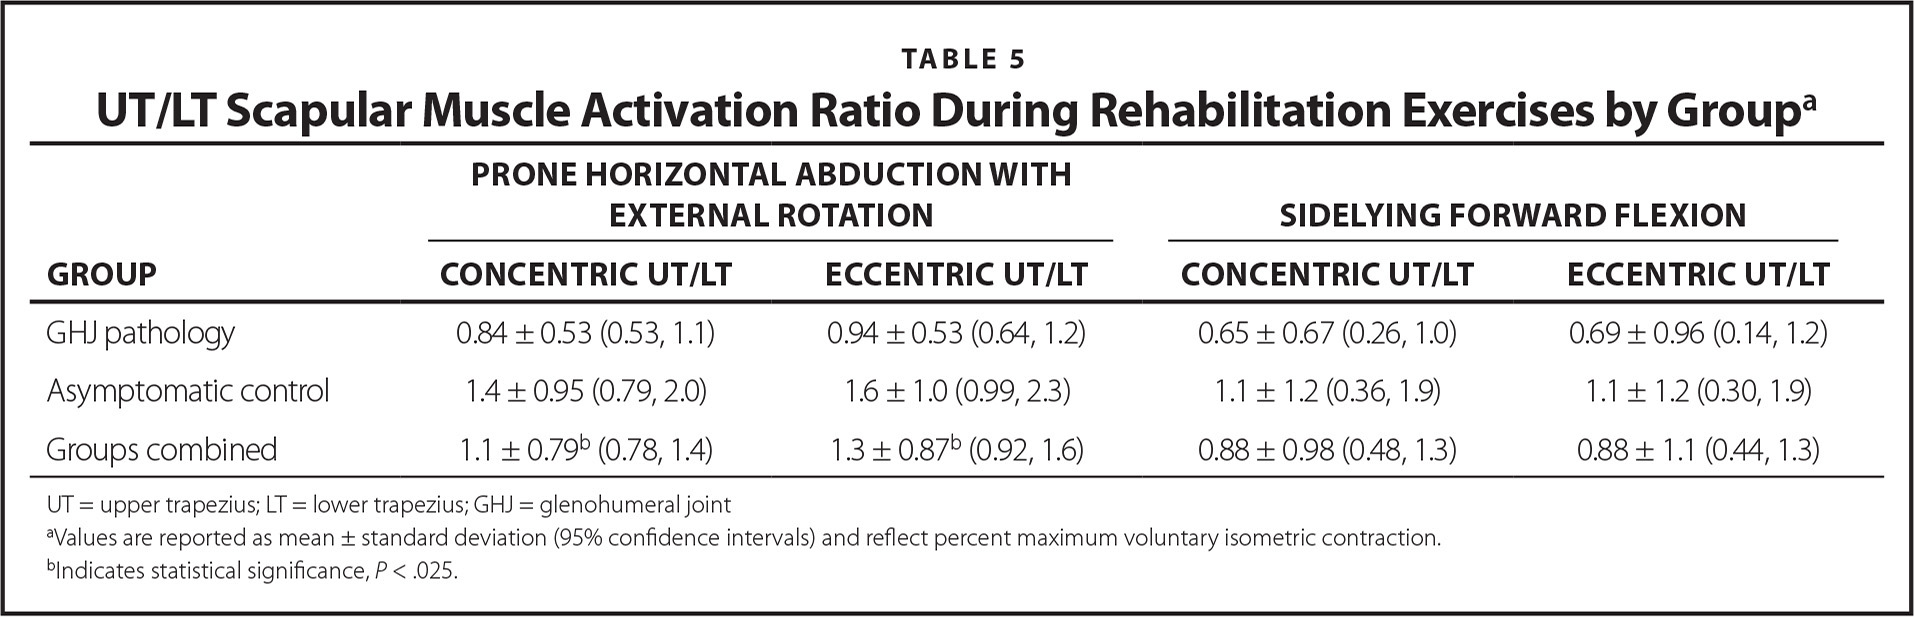 UT/LT Scapular Muscle Activation Ratio During Rehabilitation Exercises by Groupa